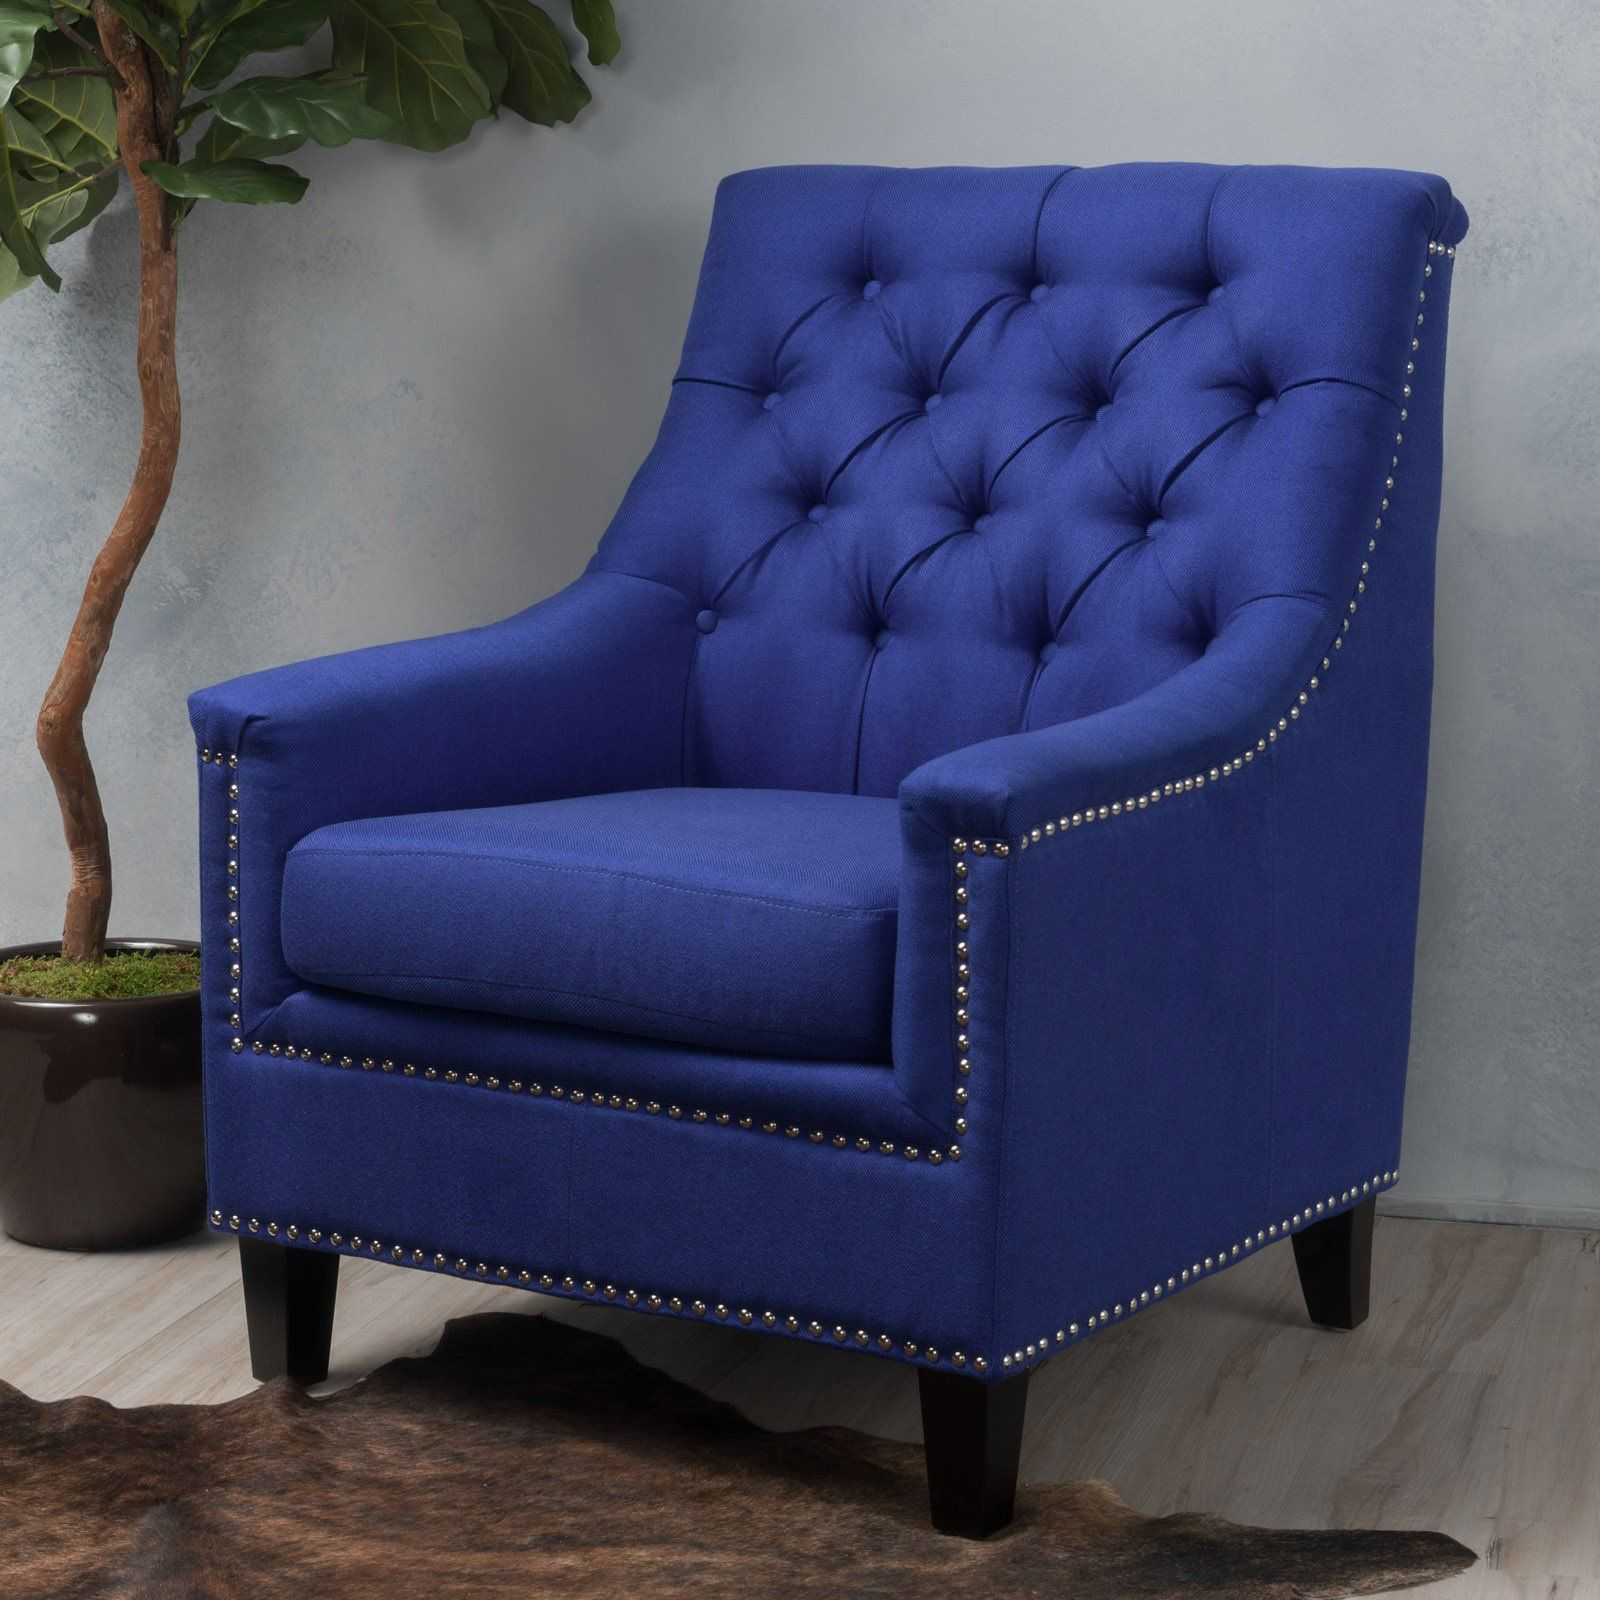 Surprising Jasline Fabric Tufted Club Chair Navy Blue Products In Gmtry Best Dining Table And Chair Ideas Images Gmtryco